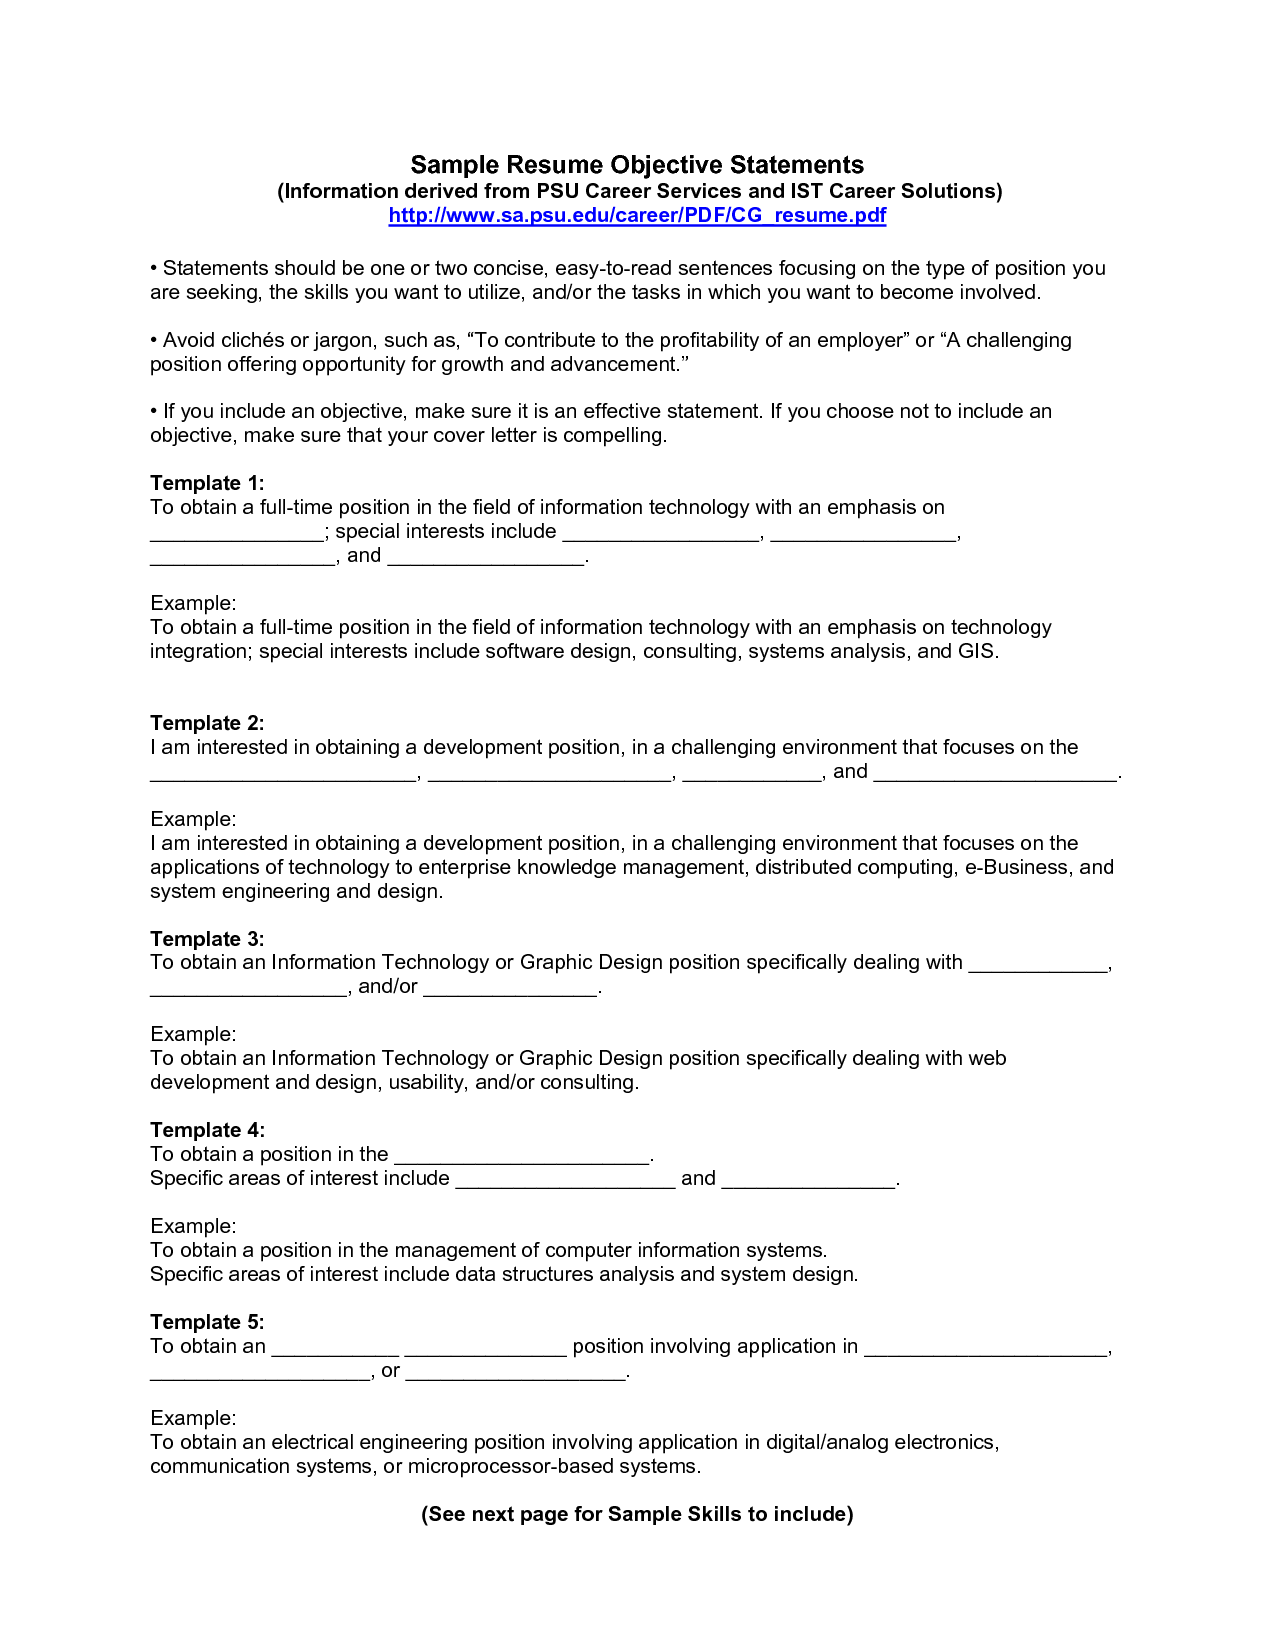 Top Resume Objective Examples of administrative assistant resume objective example